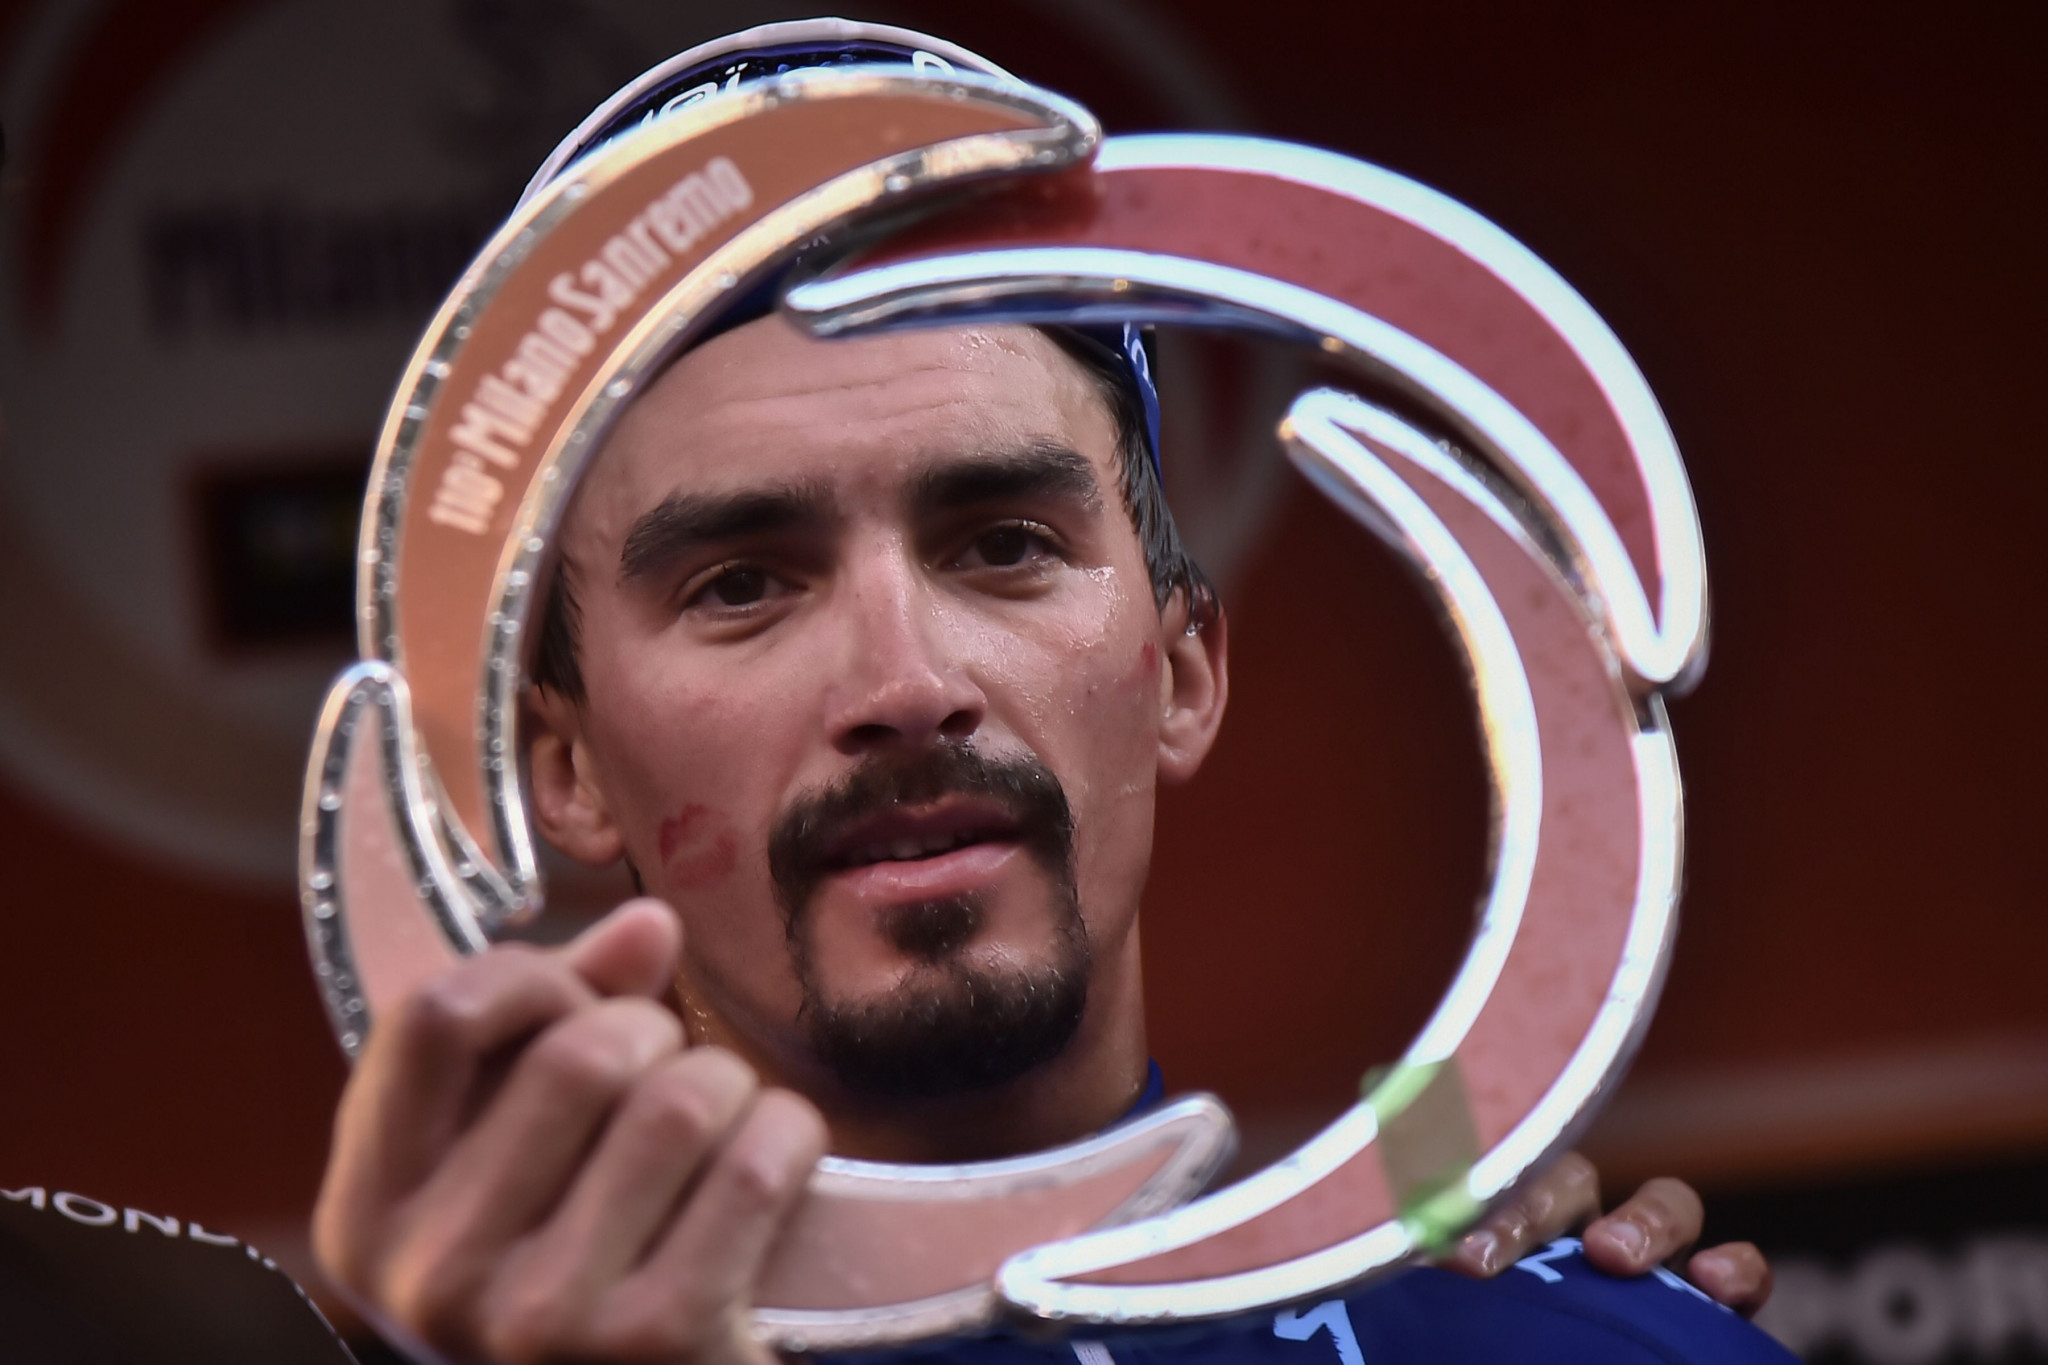 Alaphilippe sprints to victory at Milan-San Remo